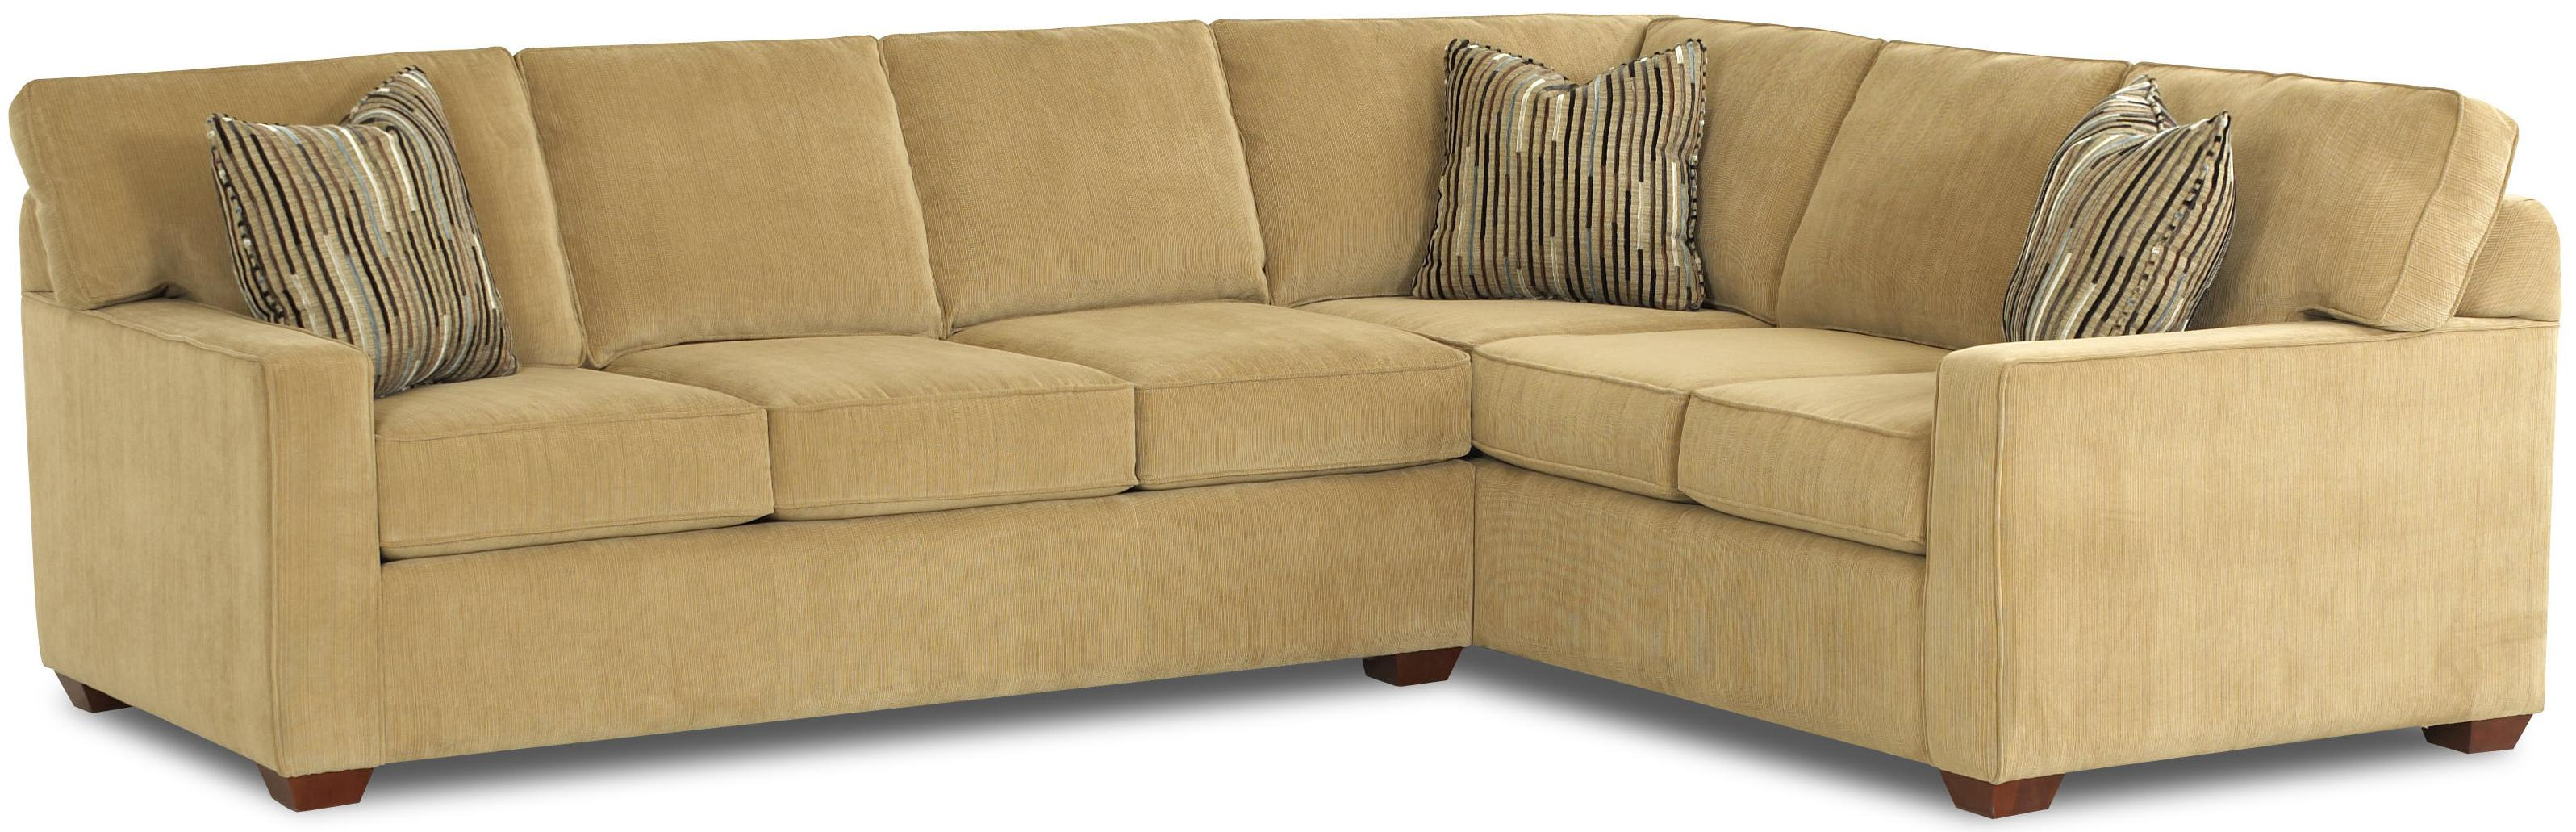 Klaussner Selection L-Shaped Contemporary Sectional Sofa ...